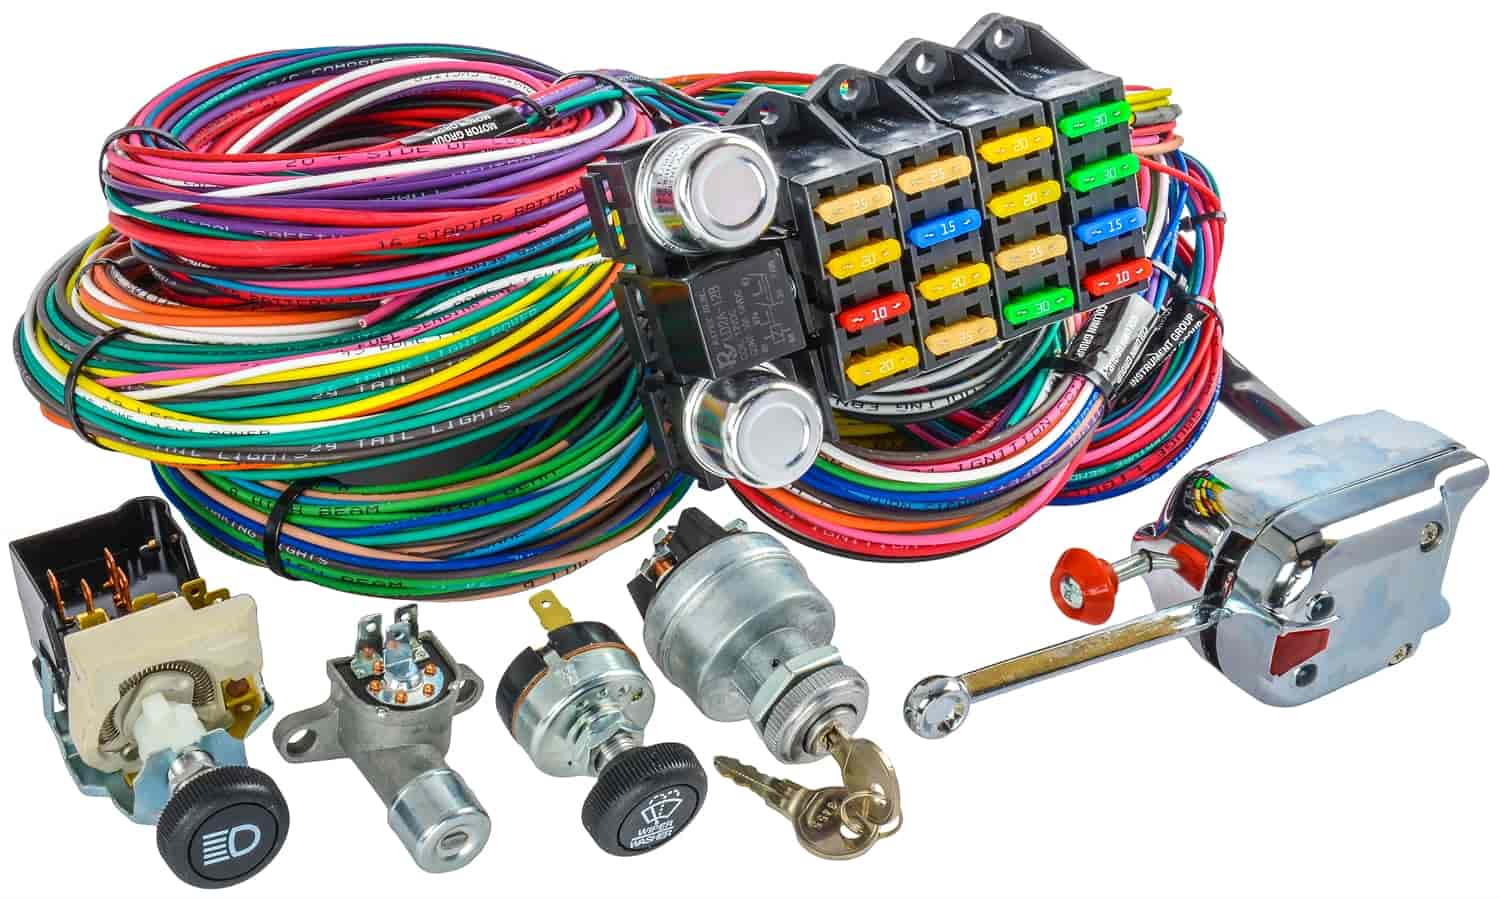 jegs 10405k universal wiring harness switch kit 20 circuit jegs rh jegs com universal wiring harness instructions universal wiring harness labeled